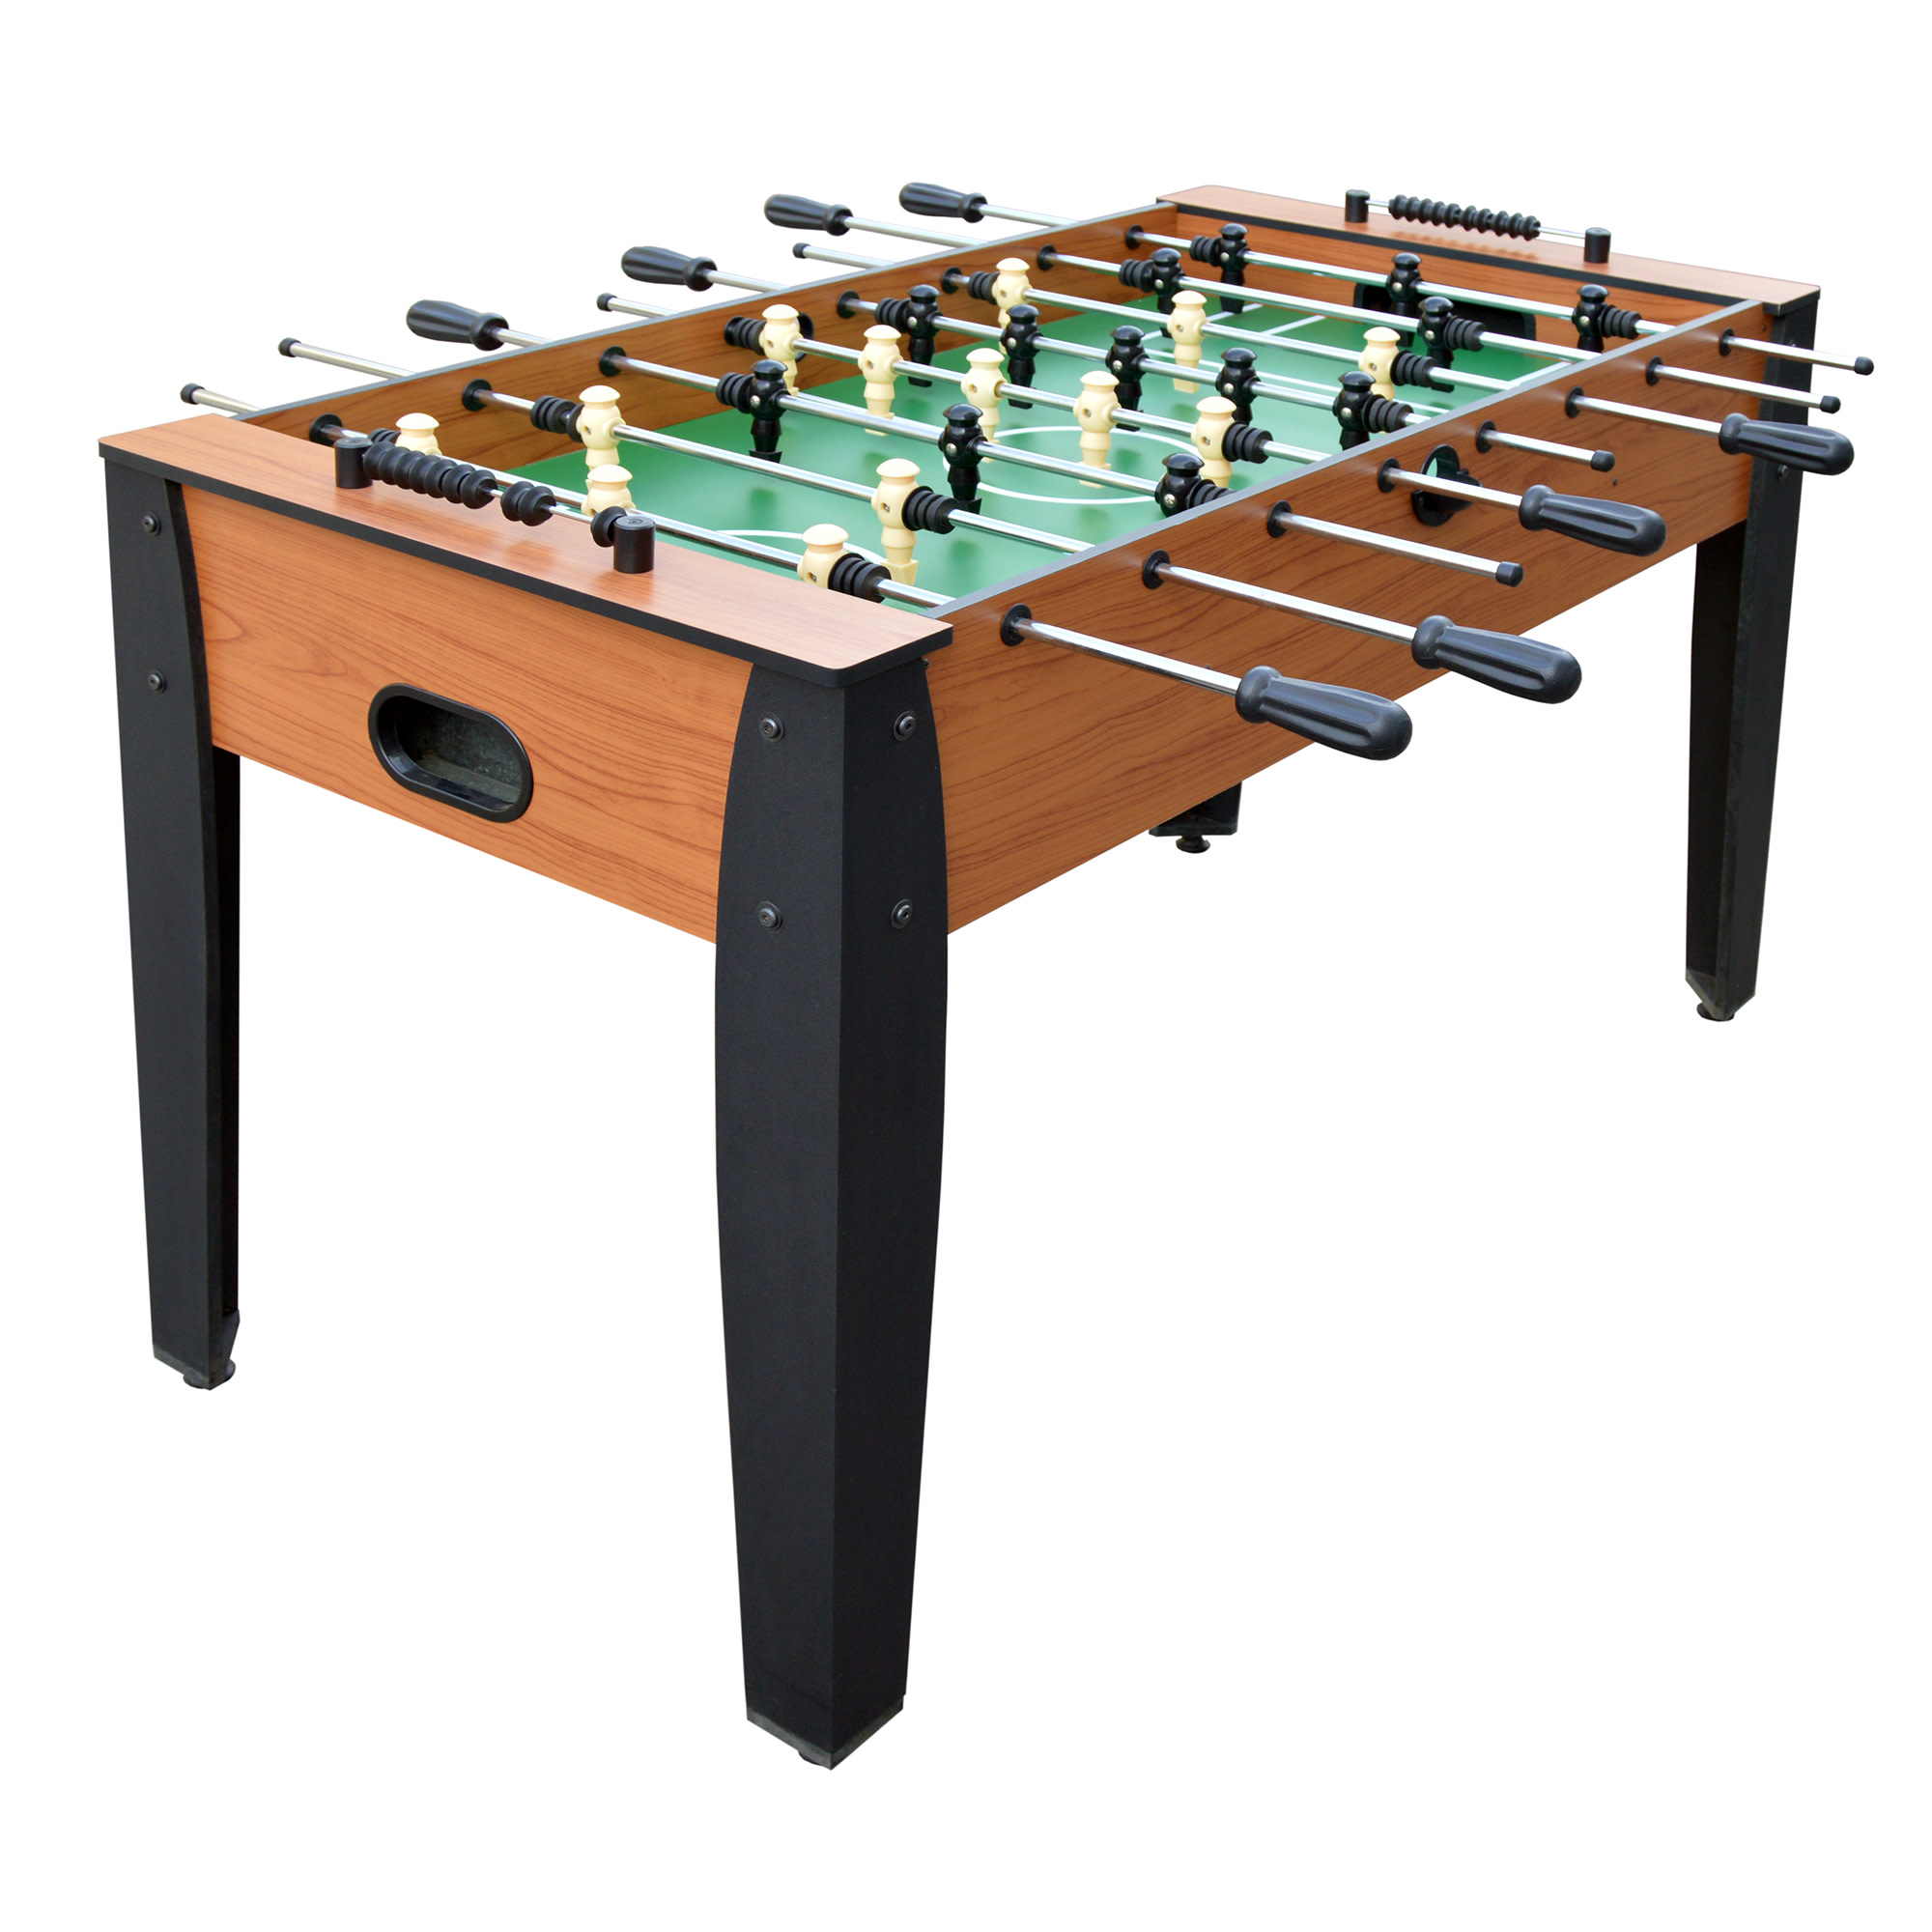 Hathaway Hurricane Foosball Table, 54-in, Light Cherry Finish